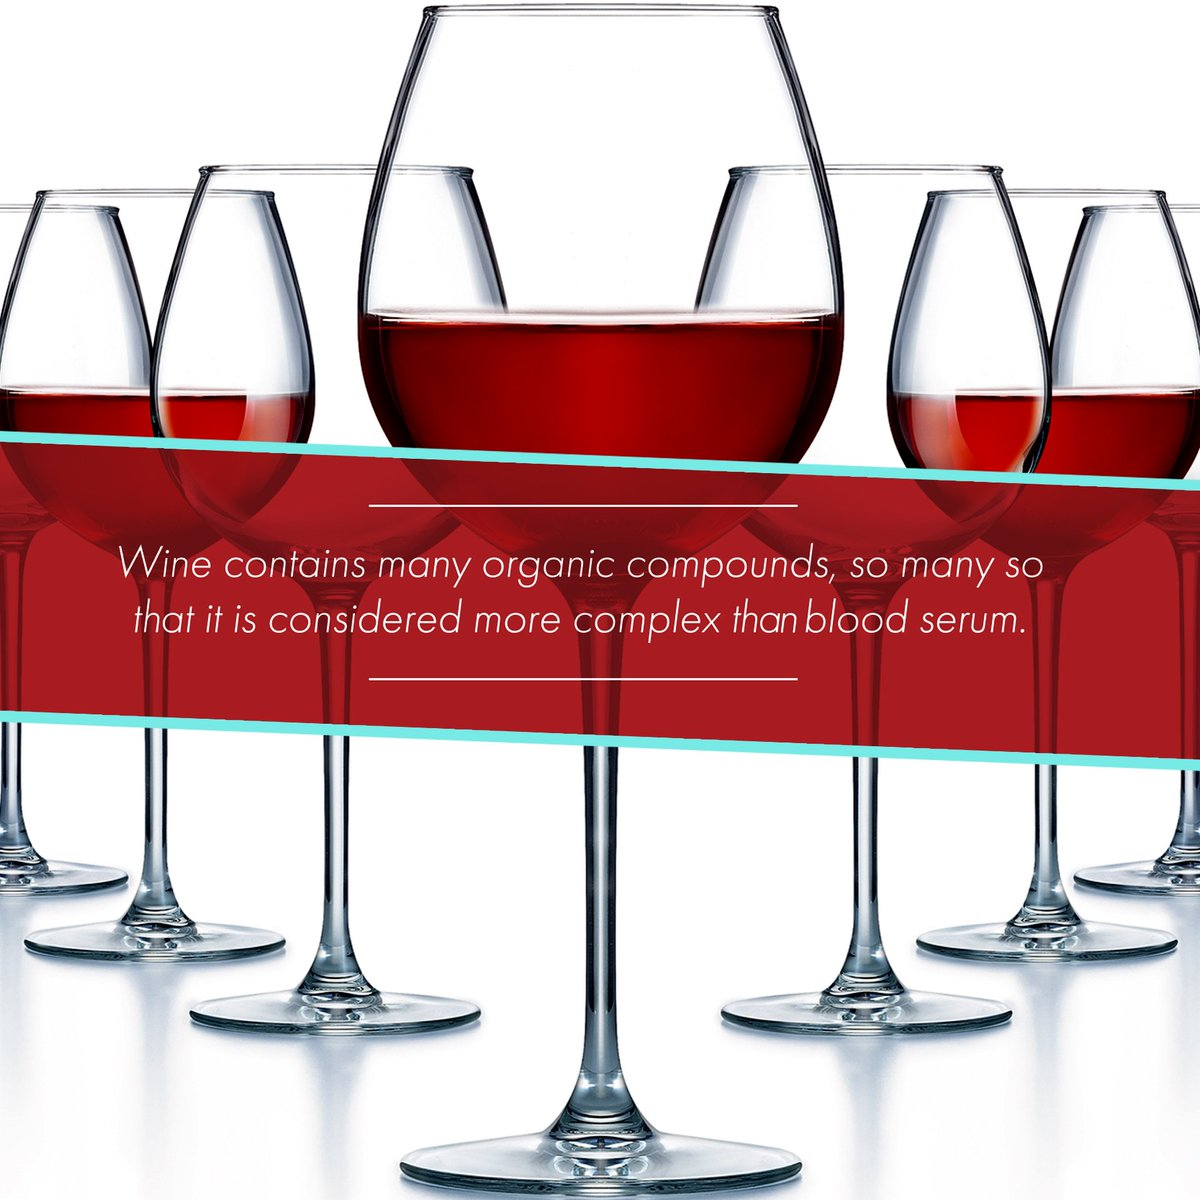 Arc Tableware UK on Twitter \ #WednesdayWisdom - Wine has a truly complex structure - #Winesday #WednesdayWineWisdom #Wine #Facts #Oenology #Sommelier ...  sc 1 st  Twitter & Arc Tableware UK on Twitter: \